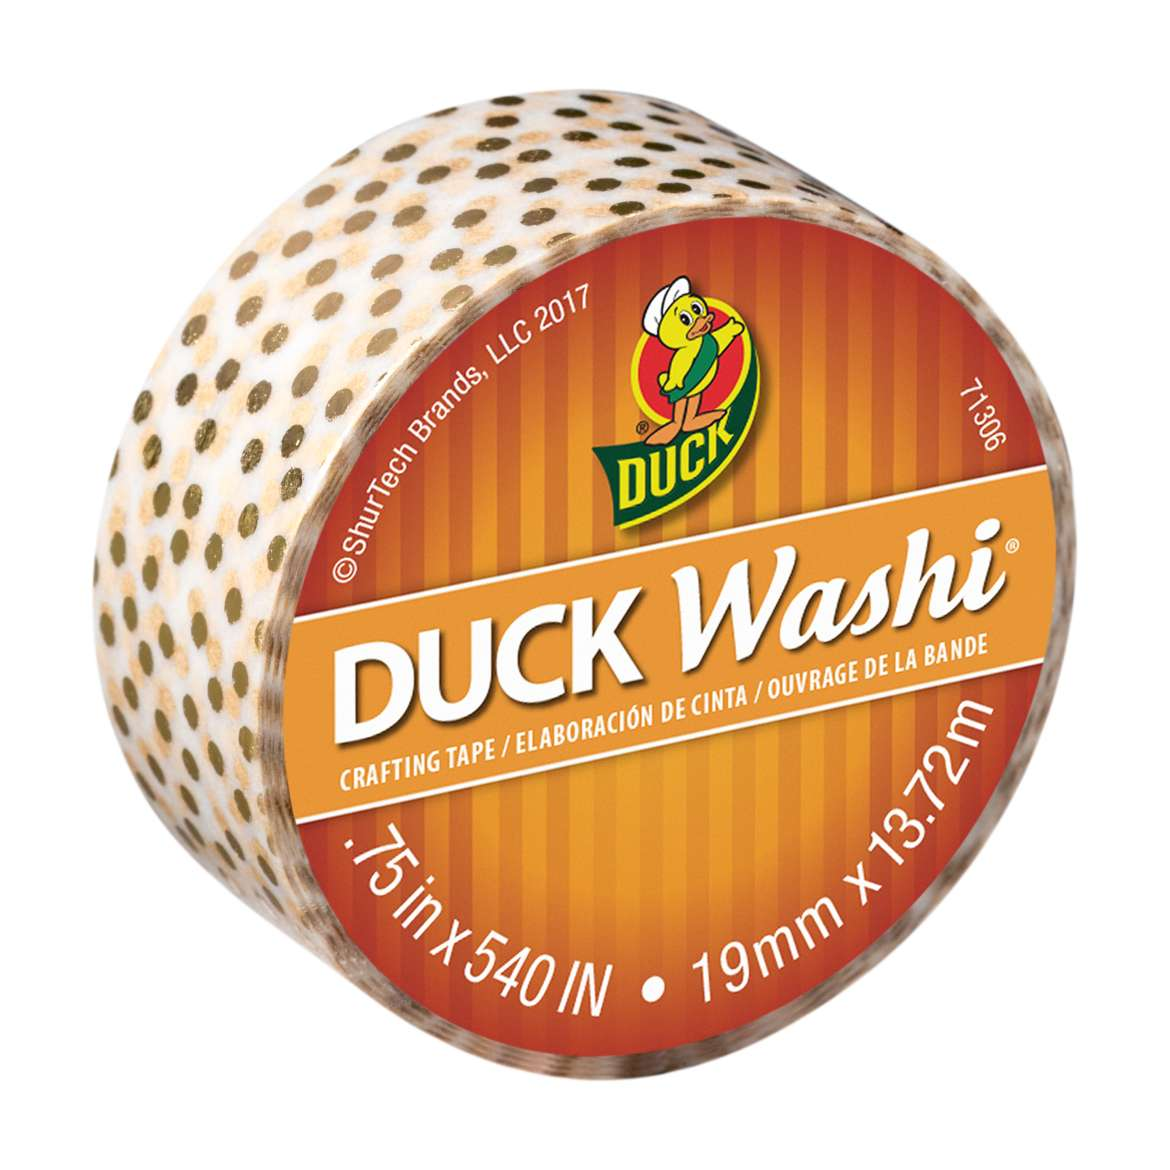 Duck Washi® Crafting Tape - Metallic Gold Dot, 0.75 in. X 15 yd. Image